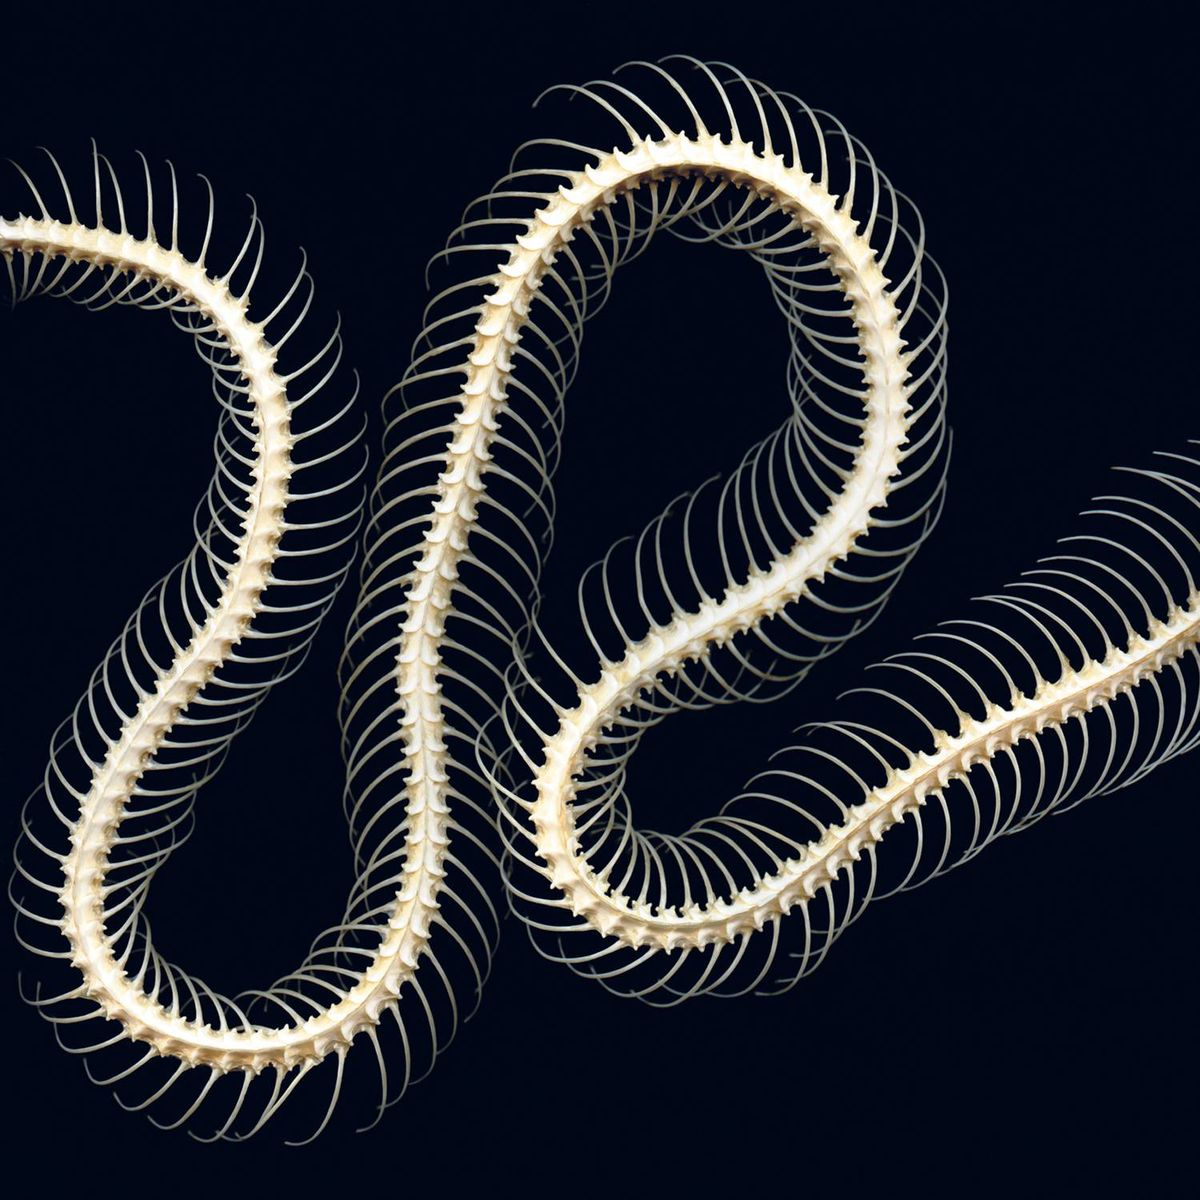 Cobra.I/II/III (triptych)© 2011. (Second image.) Each size: 20 x 20 in. Each image on 30 x 36 paper. Carbon pigment print.